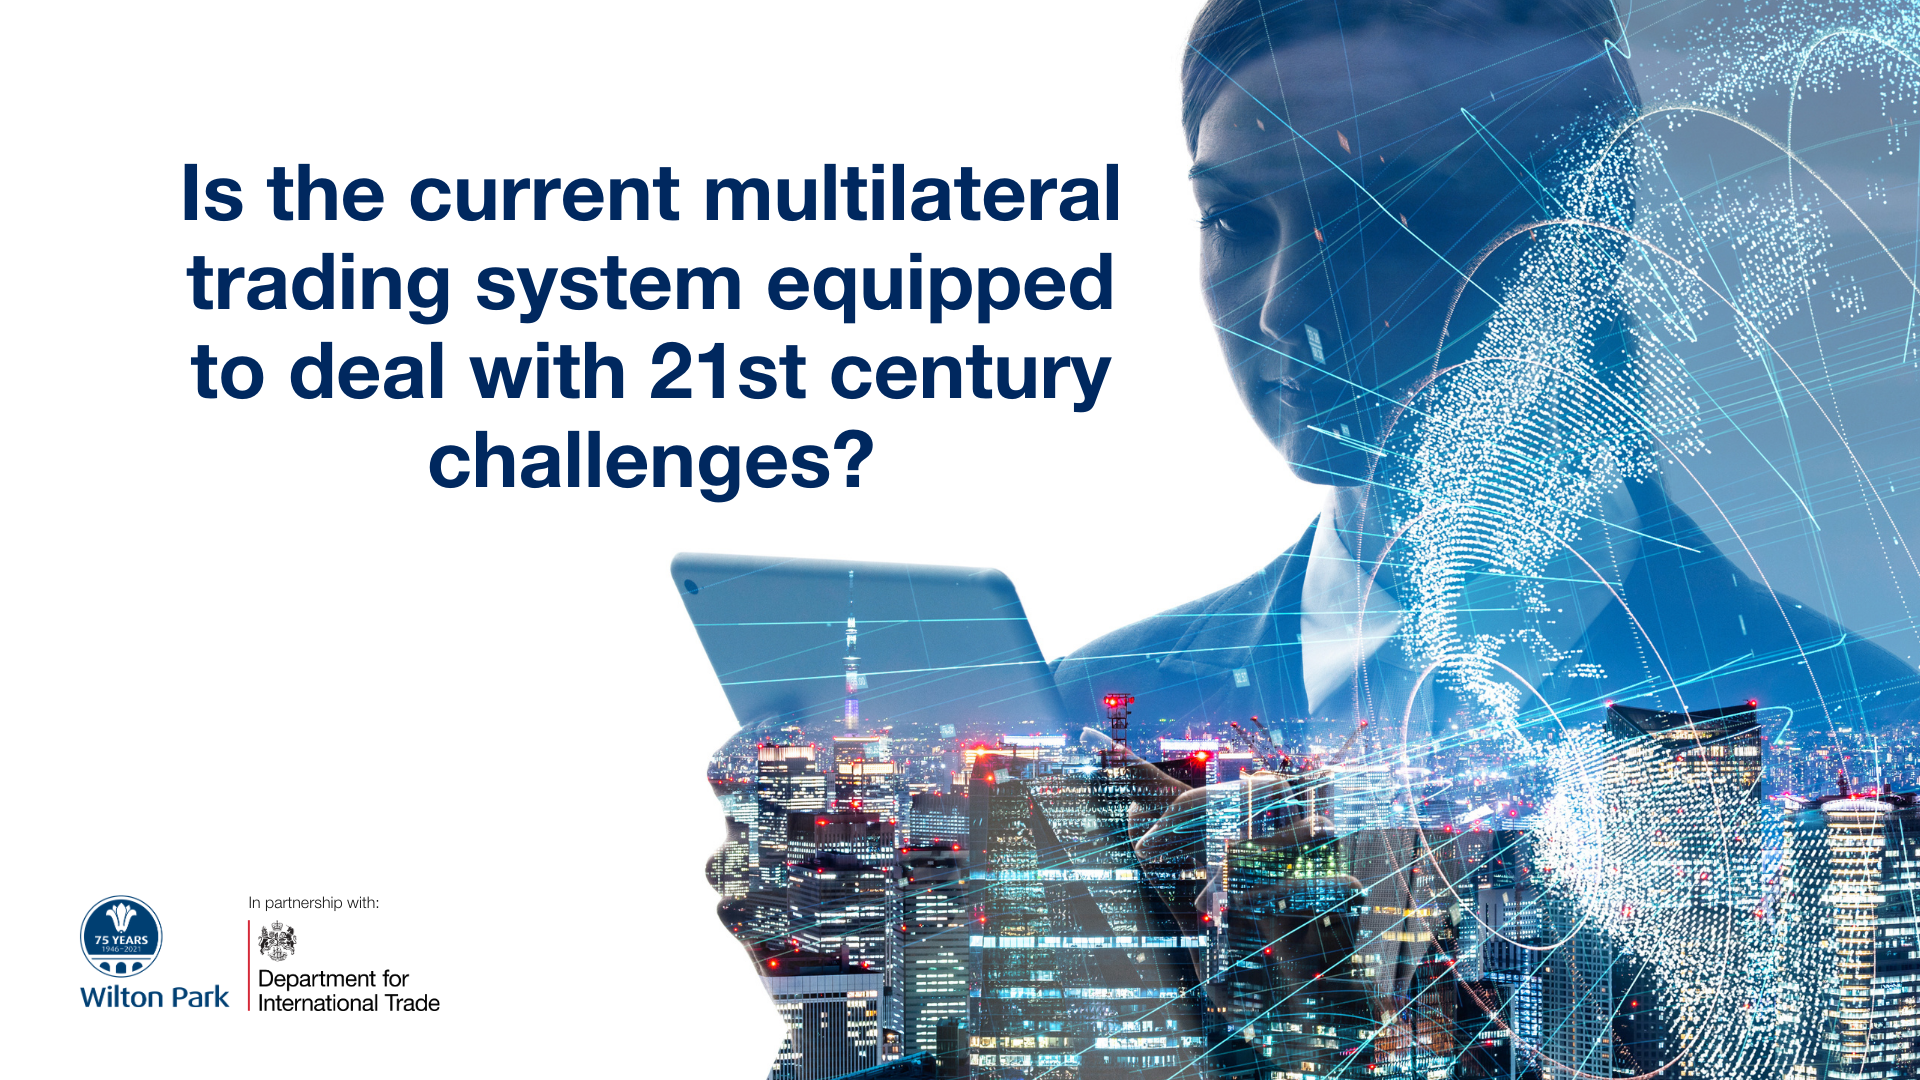 Is the current multilateral trading system equipped to deal with 21st century challenges?